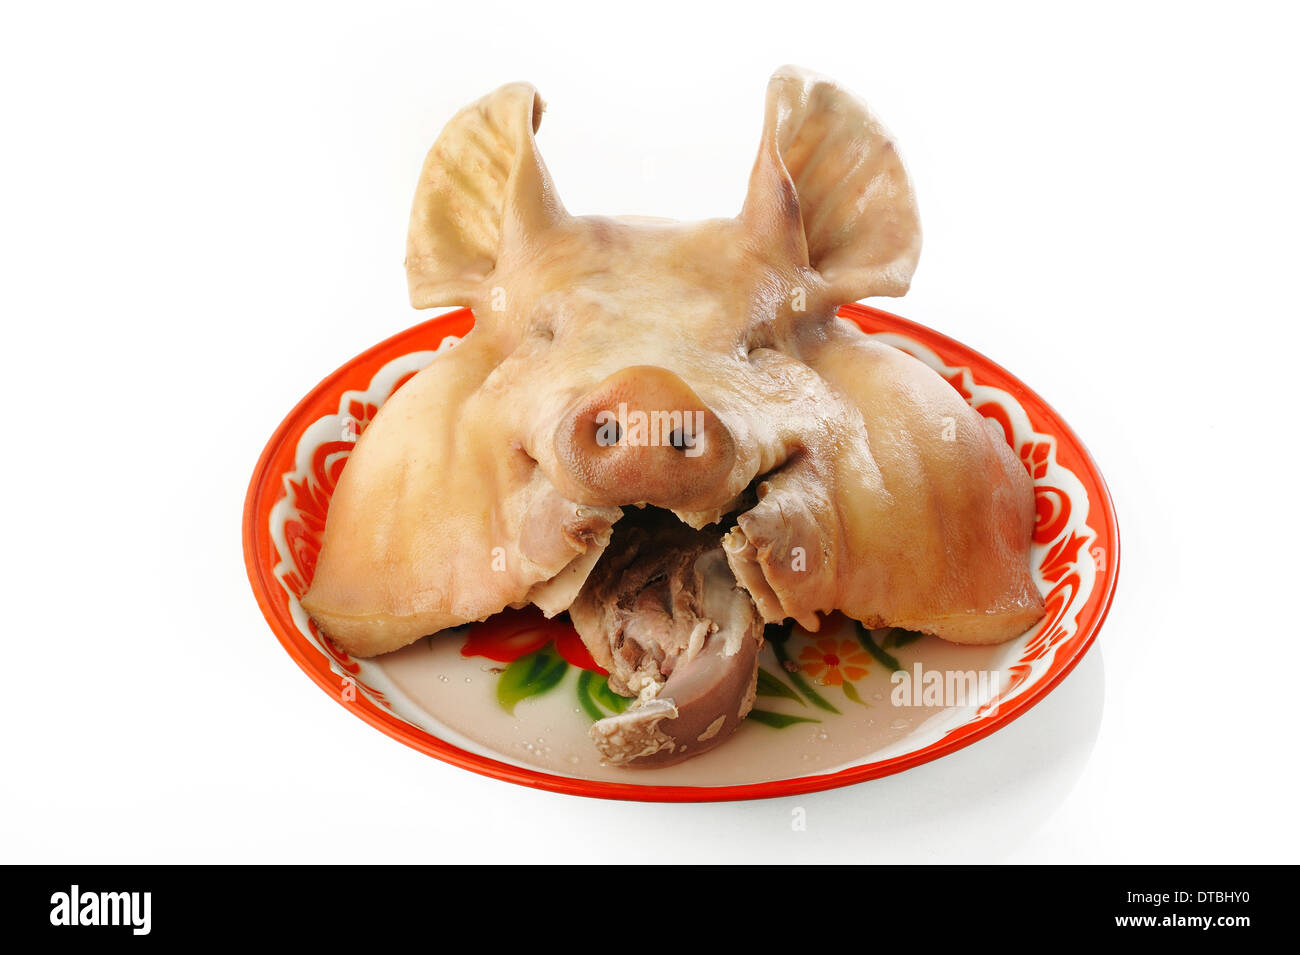 Boiled pig head on tray - Stock Image